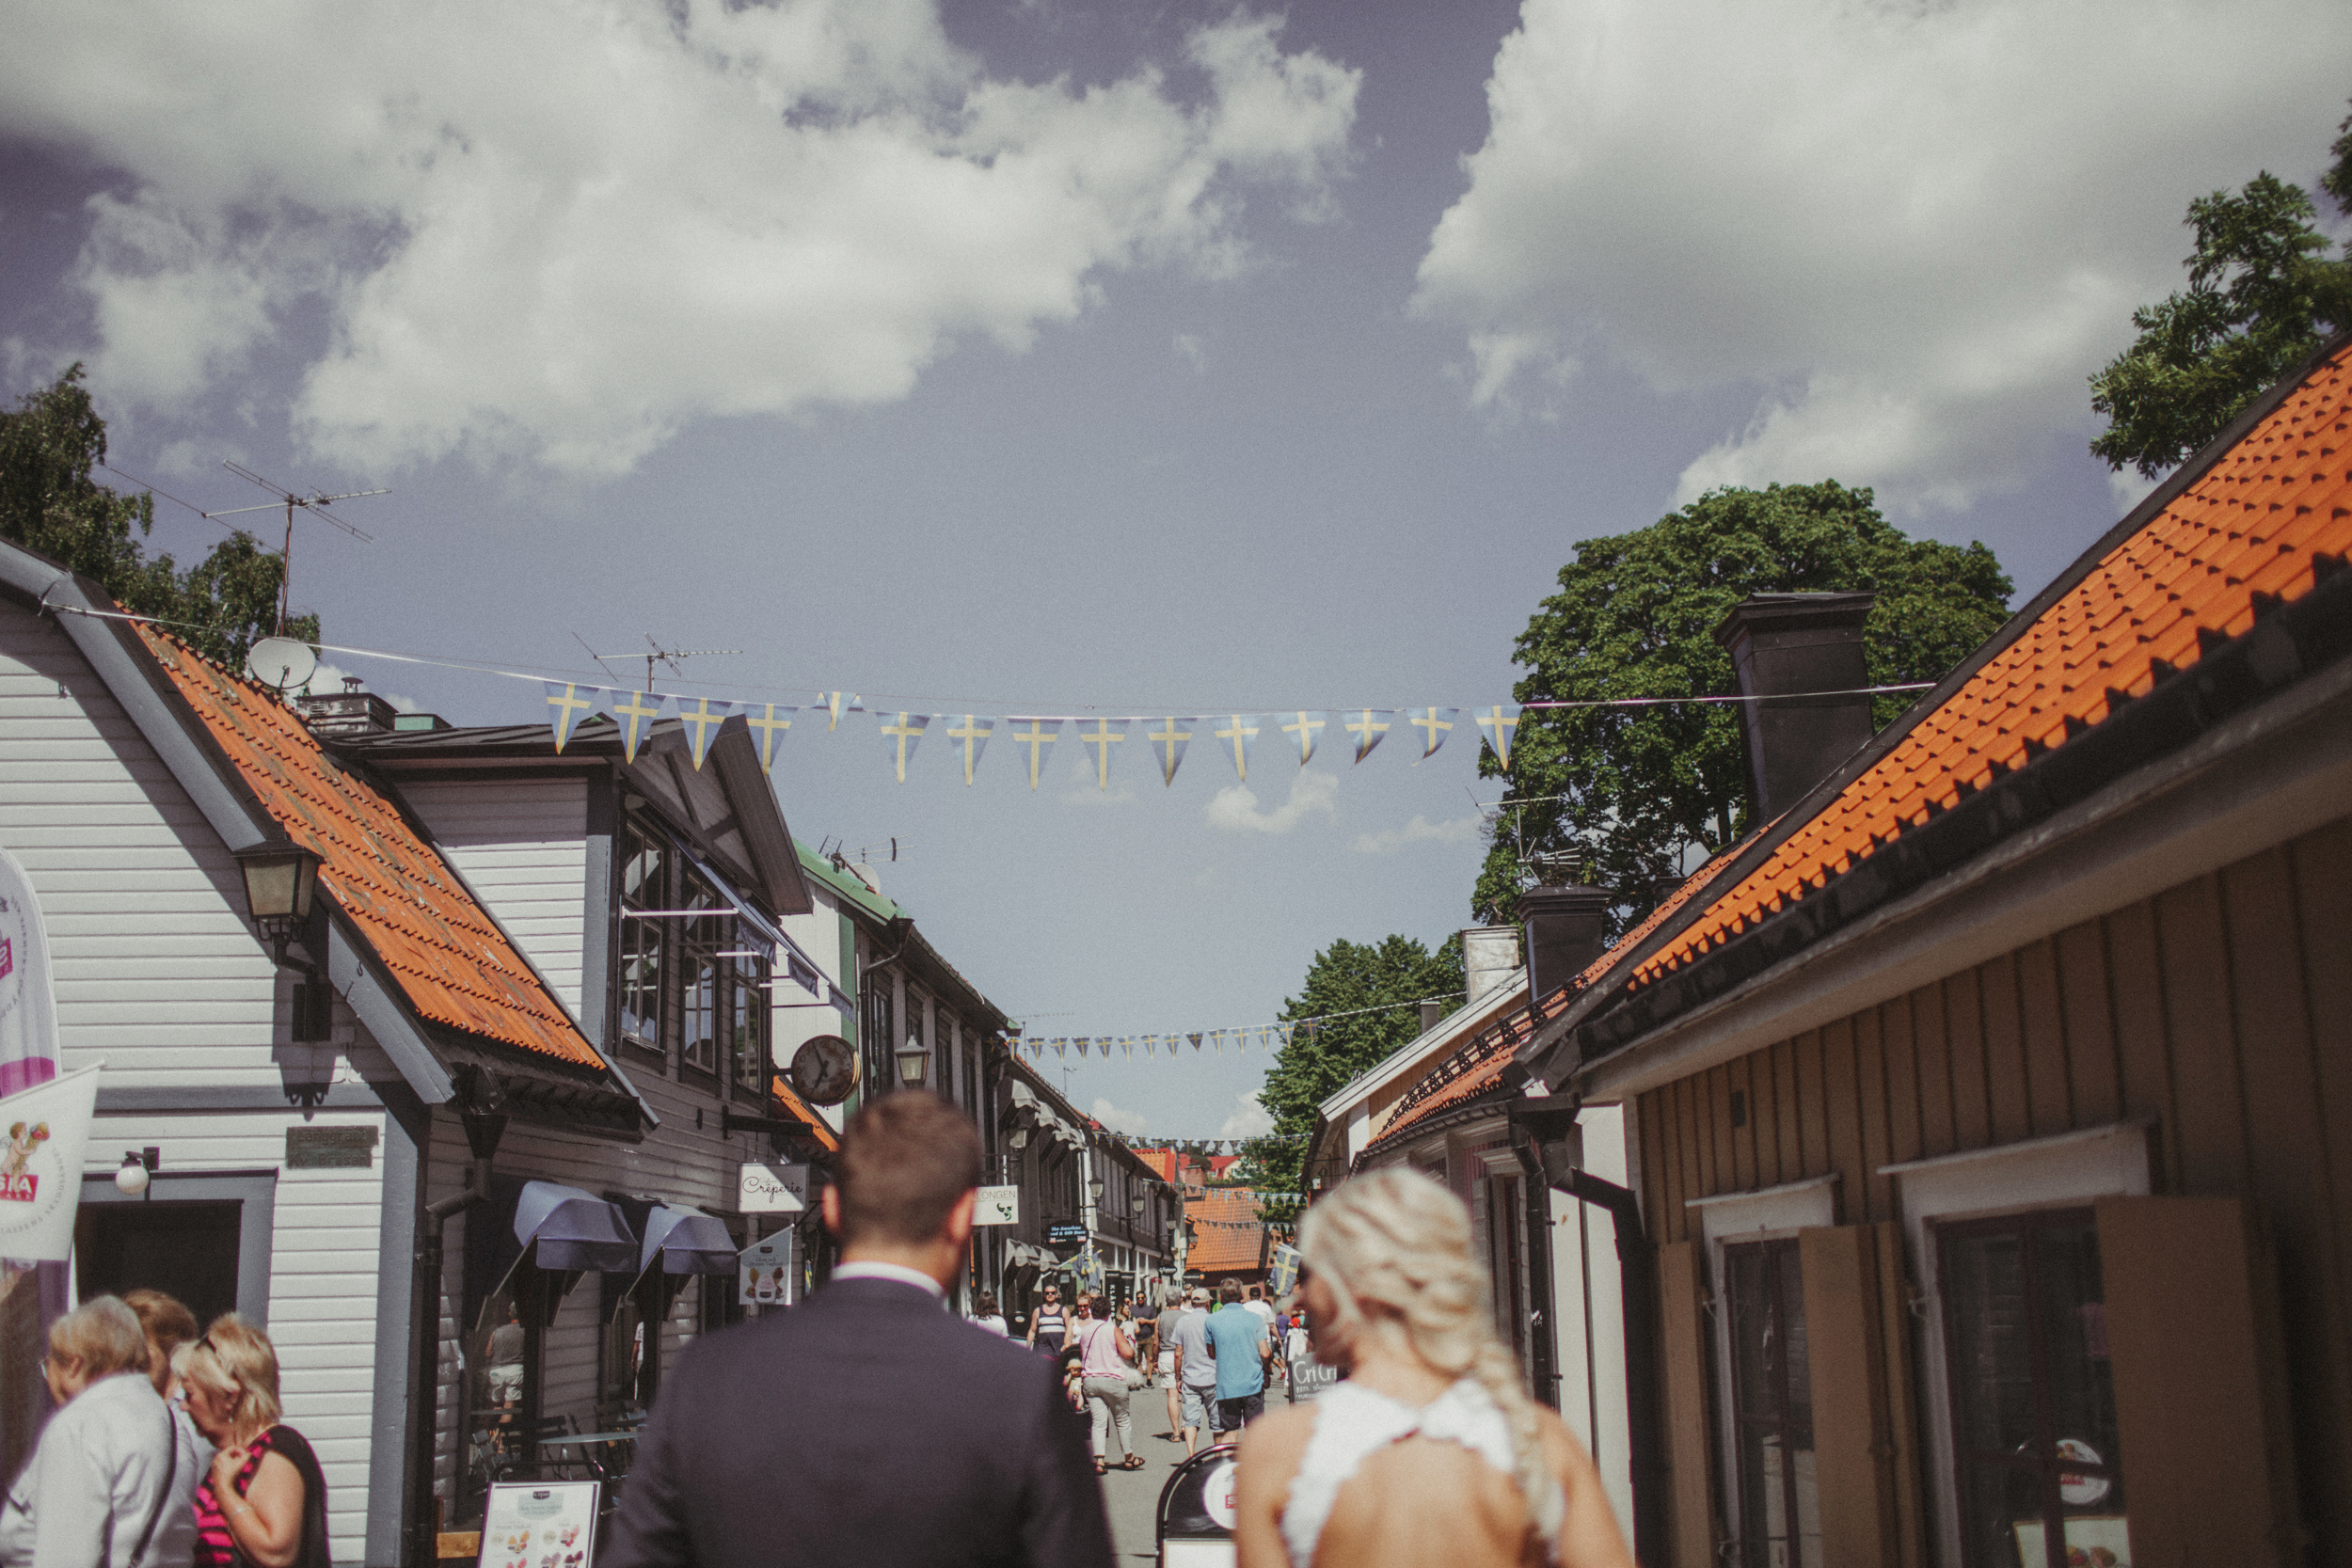 sigtuna-sweden-wedding_m_e-42.jpg